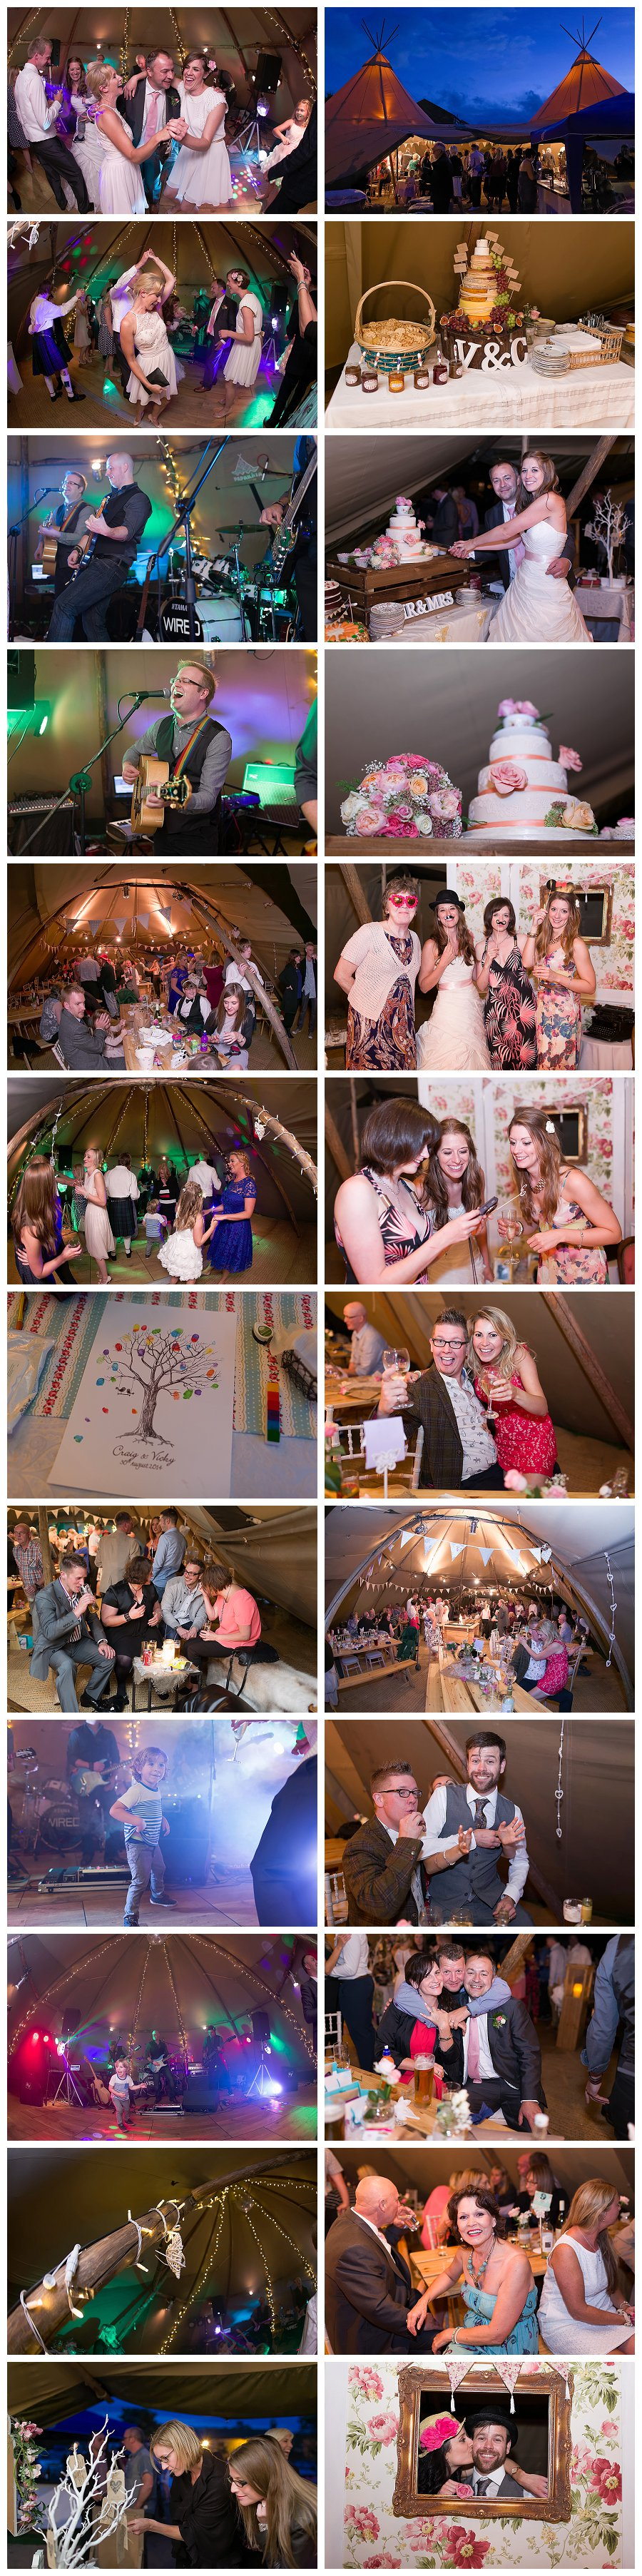 church wedding photographers Meltham,  tipi wedding photographers, teepee wedding photography